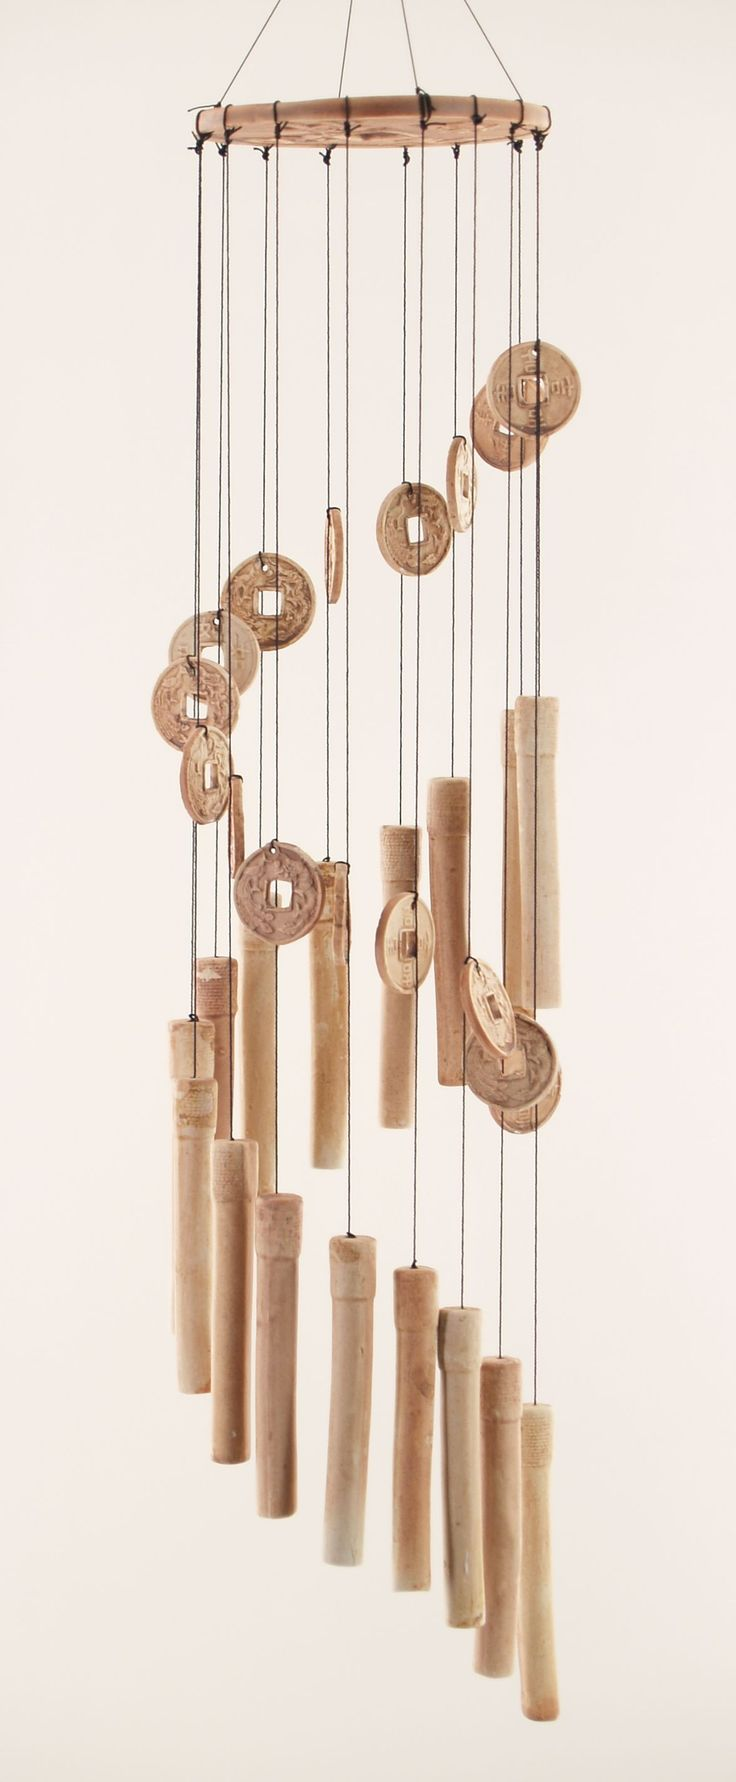 Large wind chimes for sale - Wind Chimes Click To Enlarge Image S Bamboo And Coins Clay Wind Chimes Are